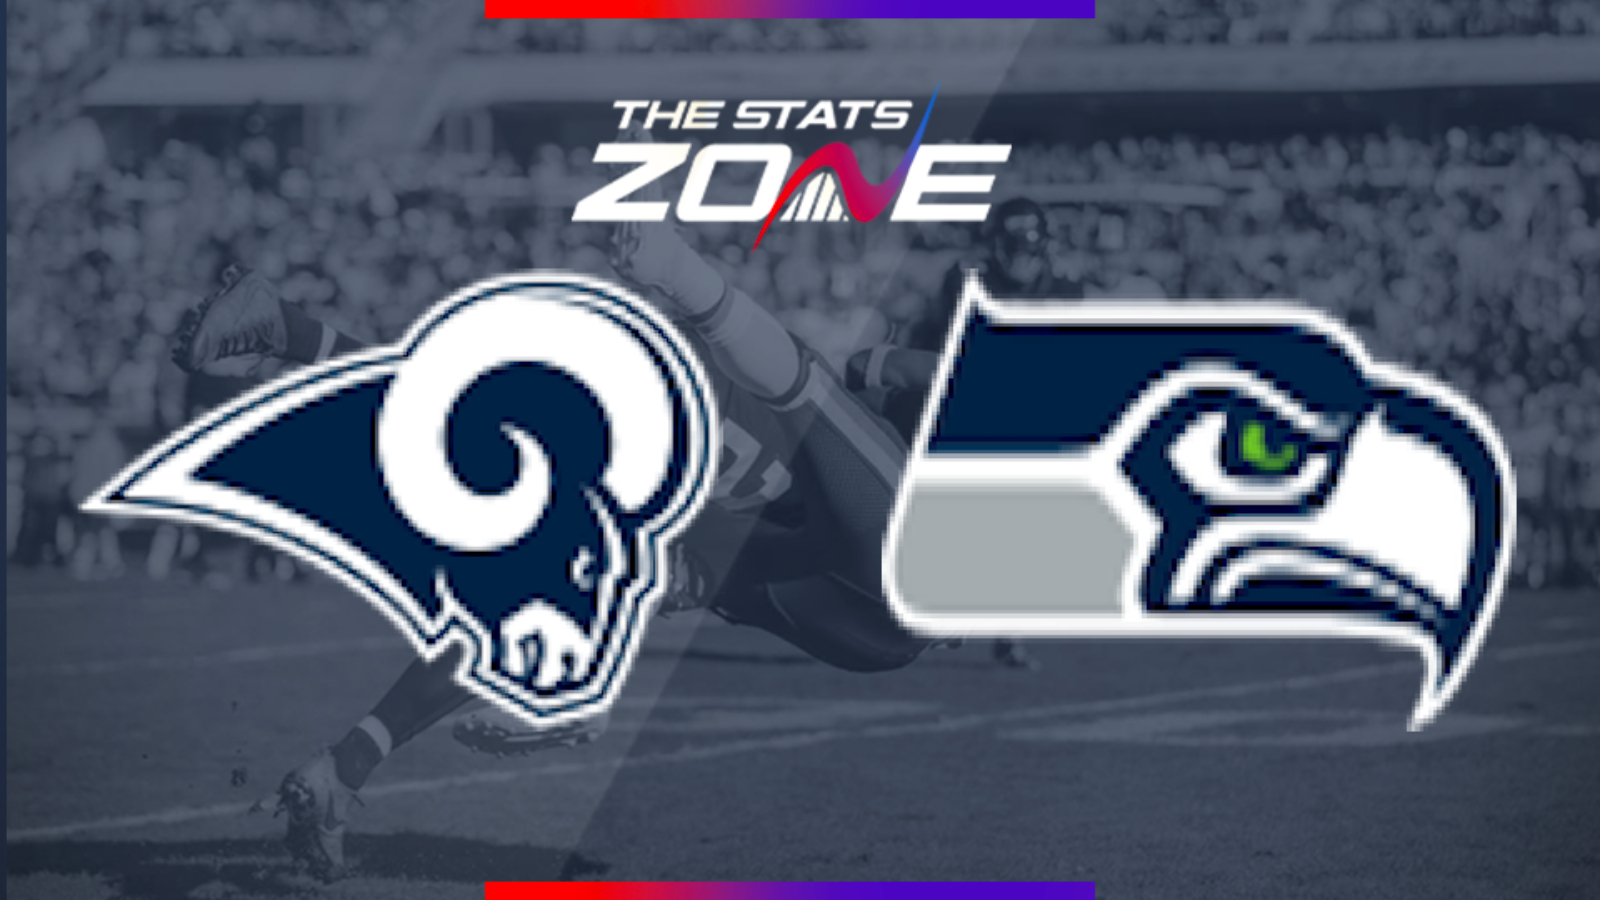 2019 Nfl Los Angeles Rams Seattle Seahawks Preview Prediction The Stats Zone